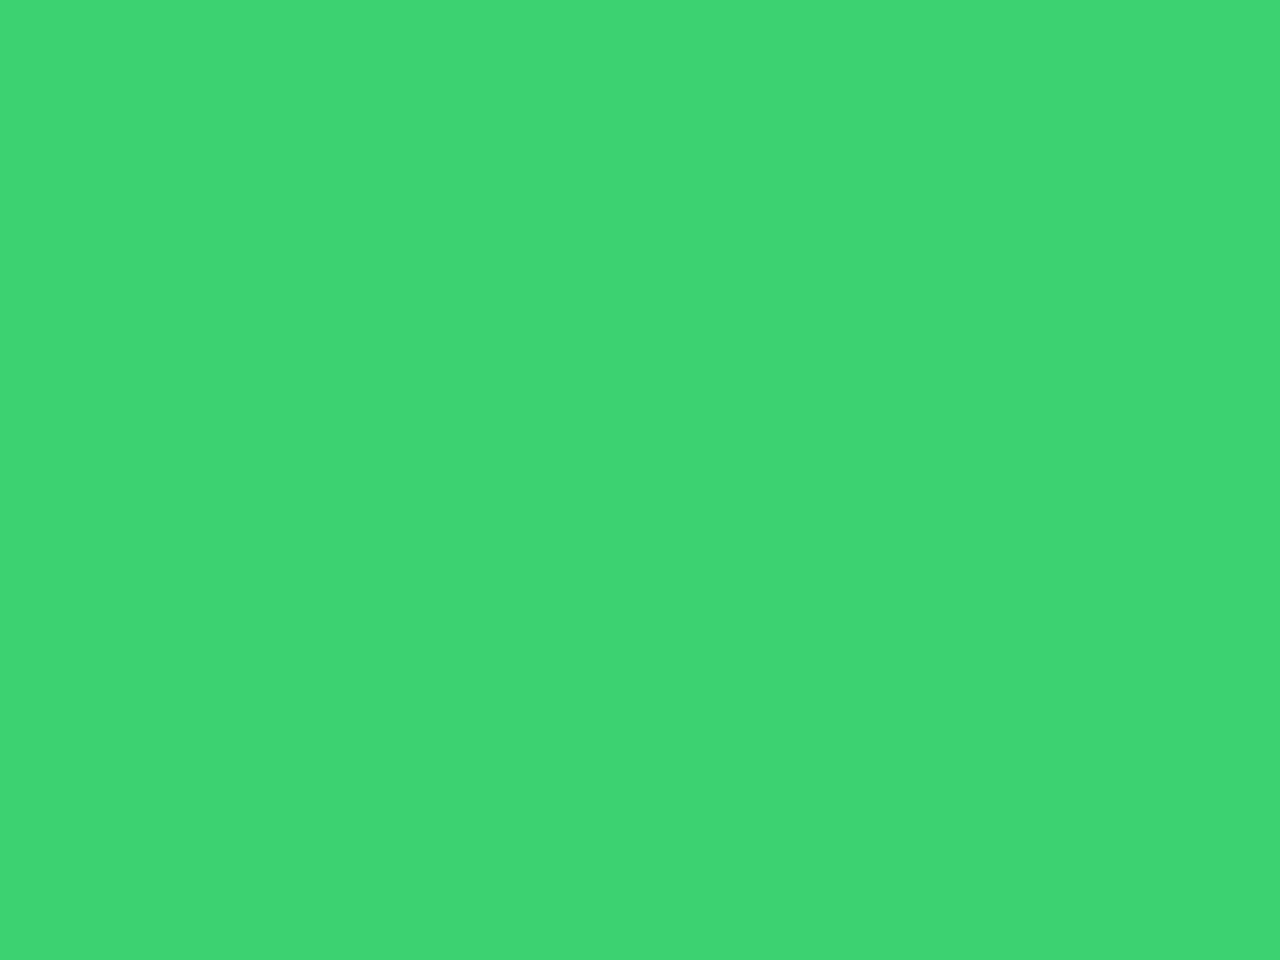 1280x960 UFO Green Solid Color Background